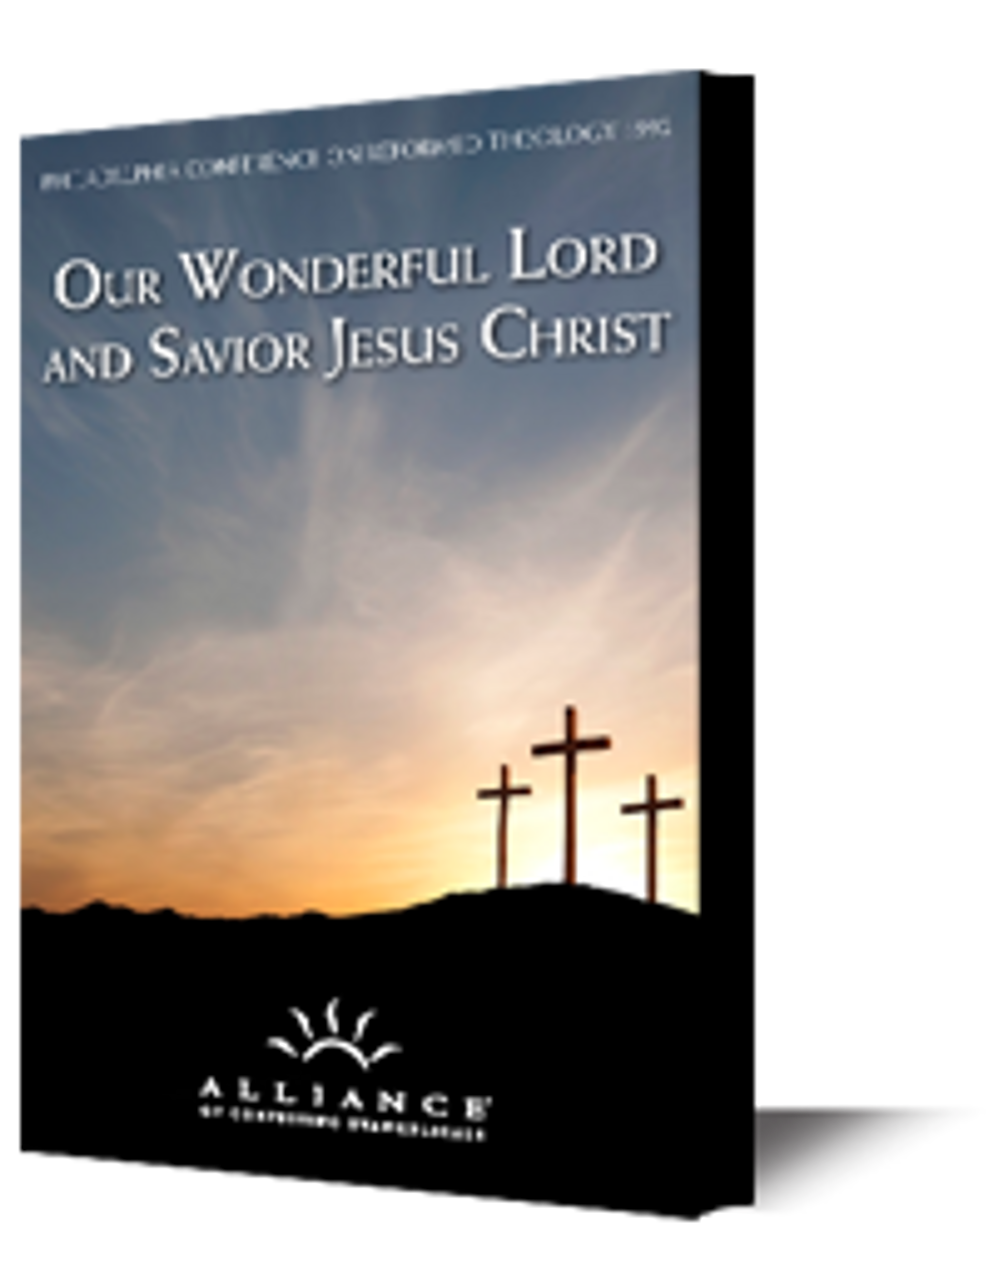 Our Wonderful Lord and Savior Jesus Christ PCRT 1992 (mp3 Disc)